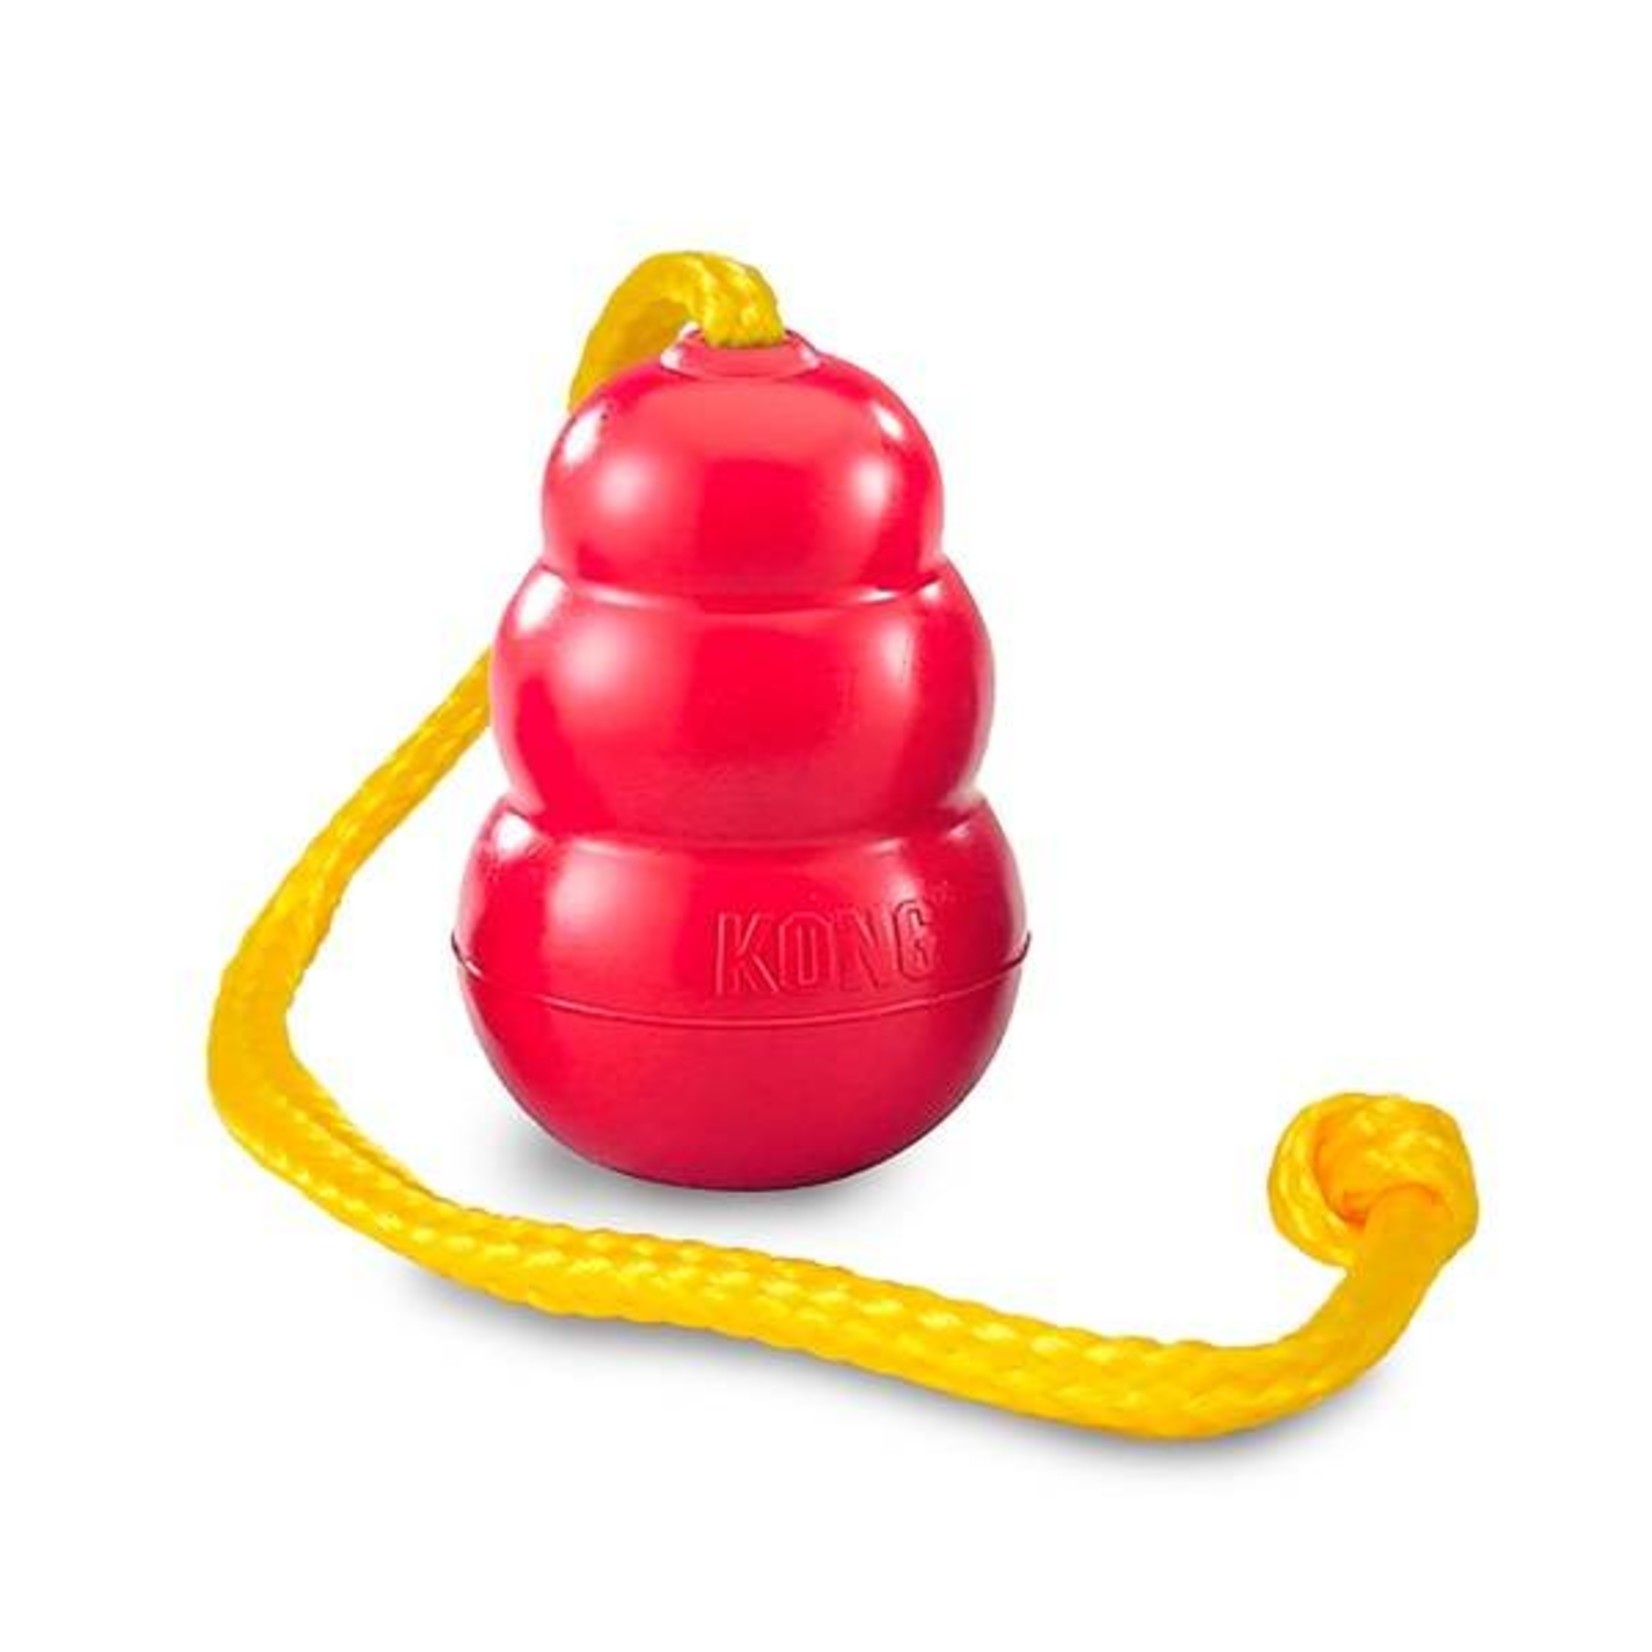 KONG Classic Red Rubber Dog Toy with Rope